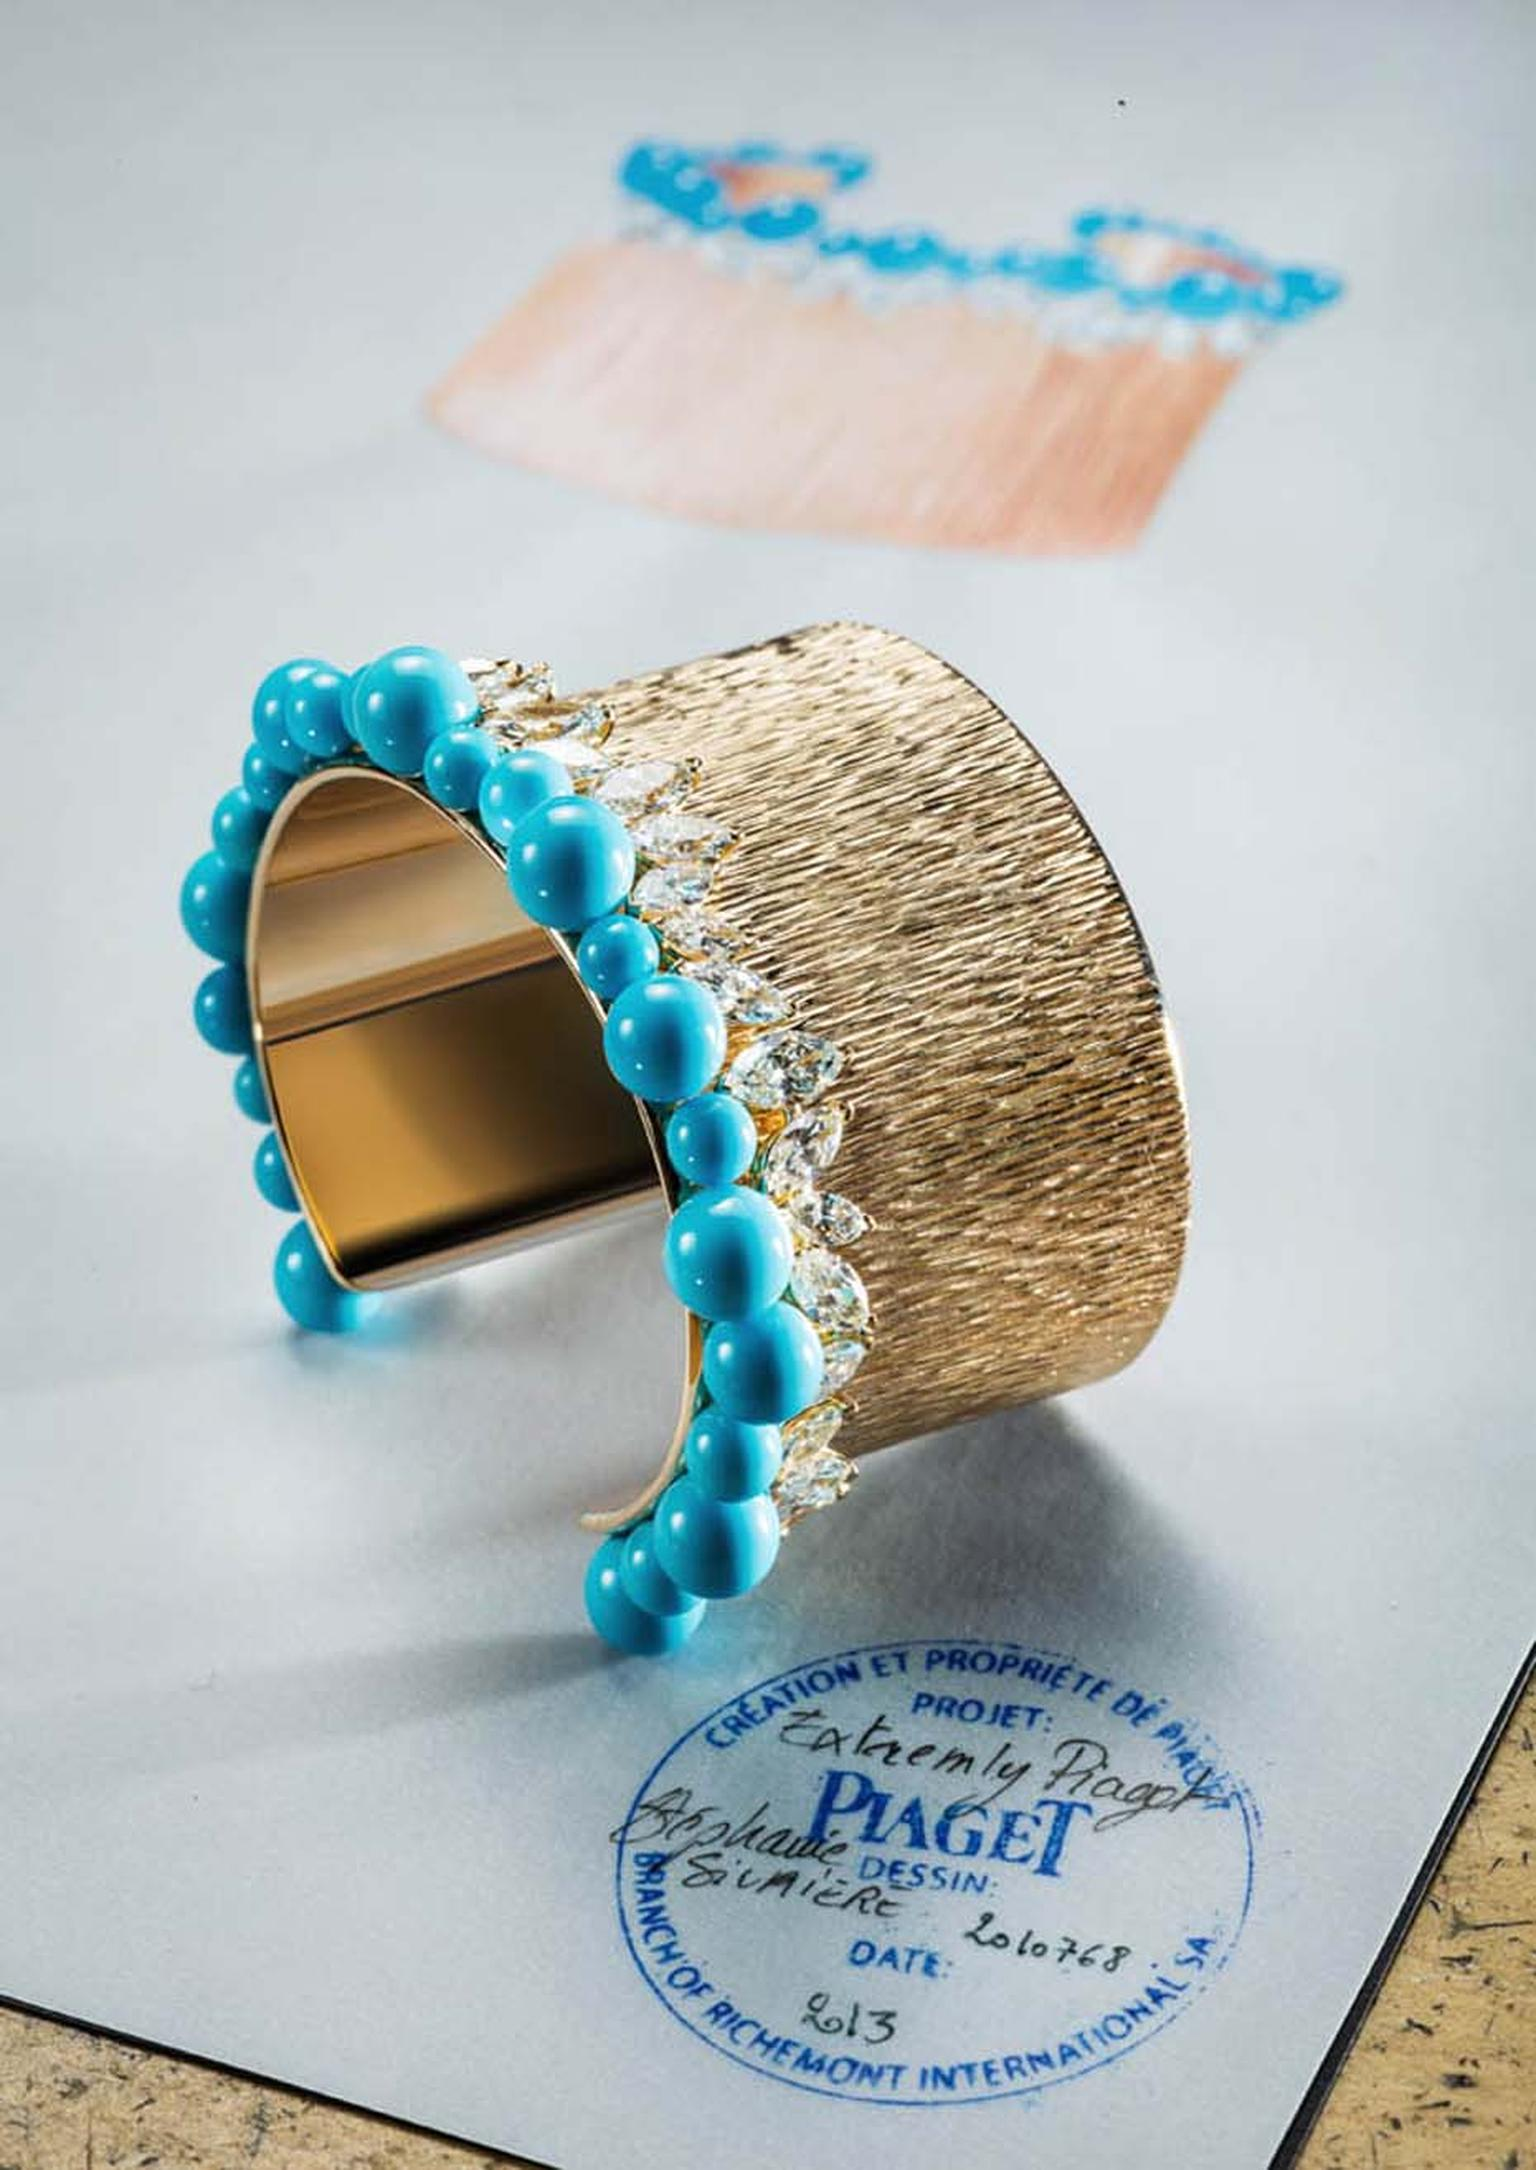 Piaget Extremely Piaget bracelet in pink gold set with 32 marquise-cut diamonds and 23 turquoise beads.